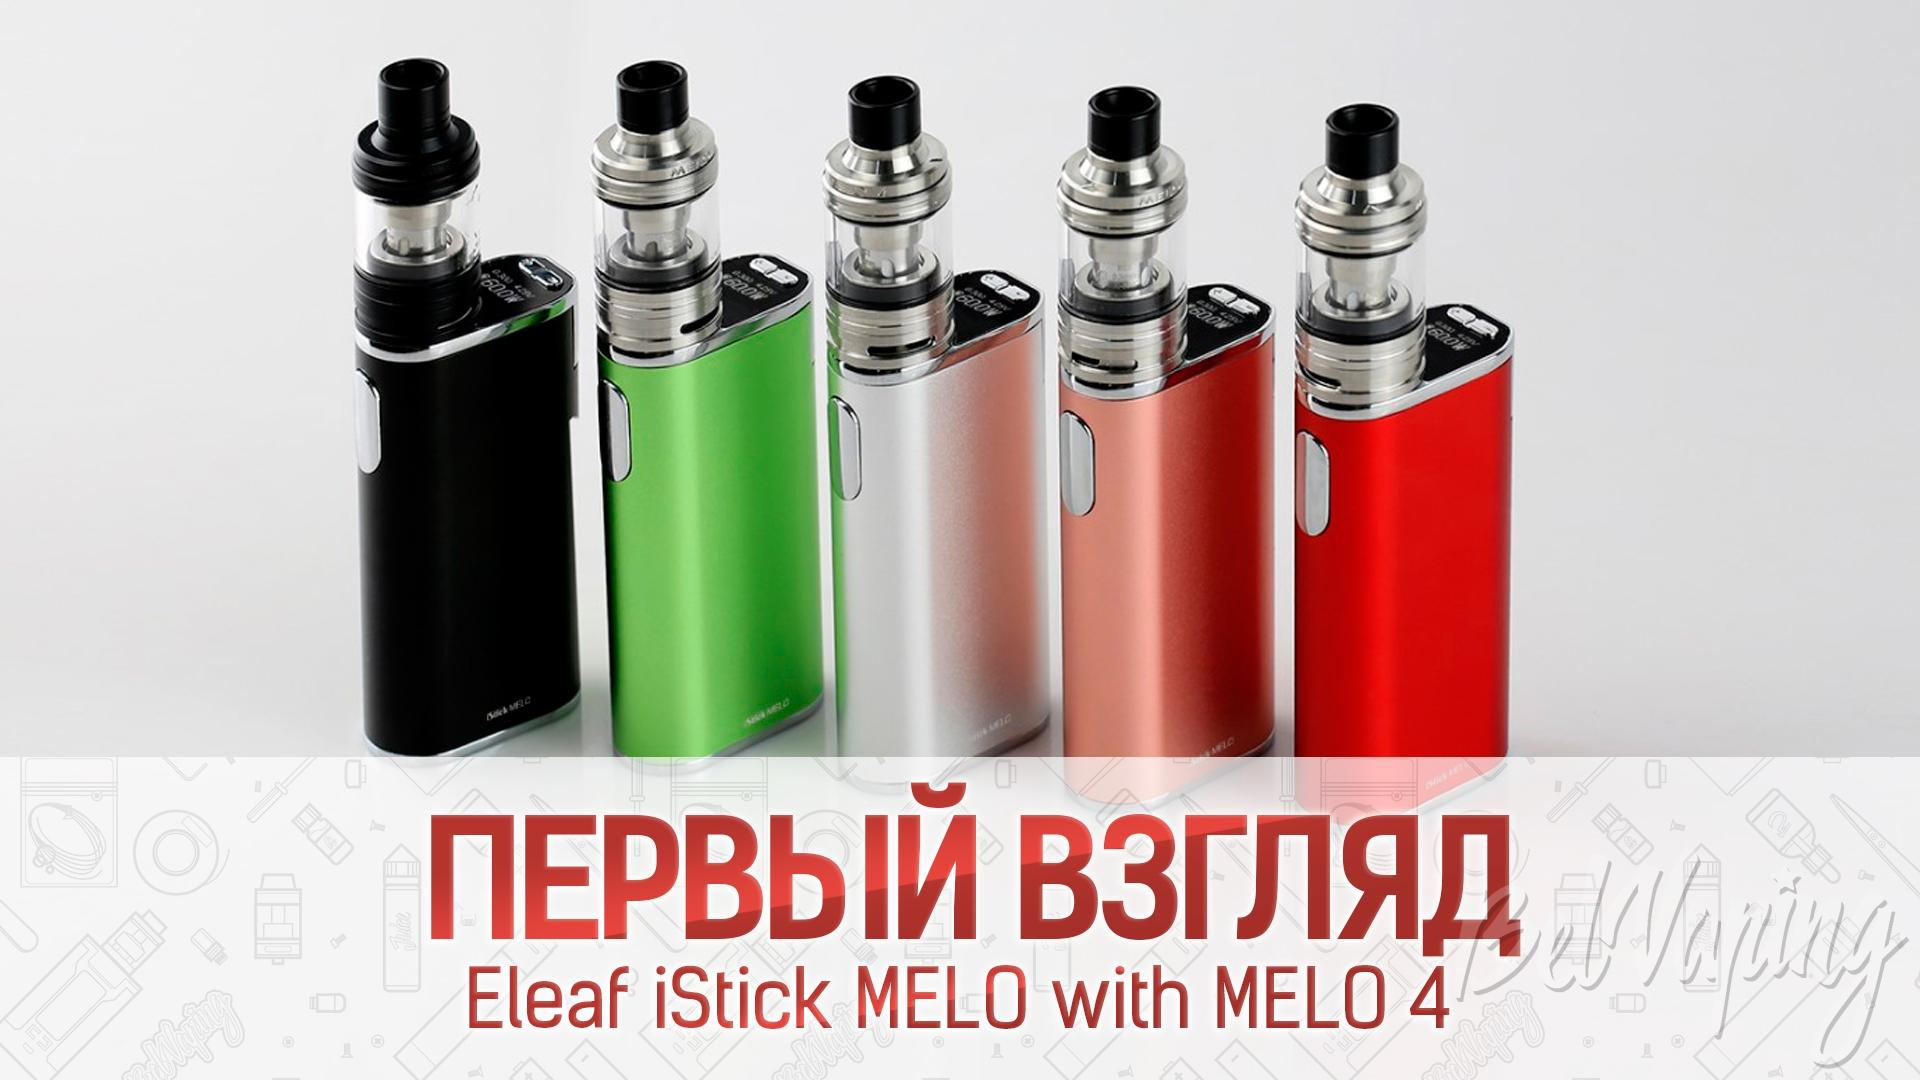 Eleaf iStick MELO with MELO 4. Первый взгляд